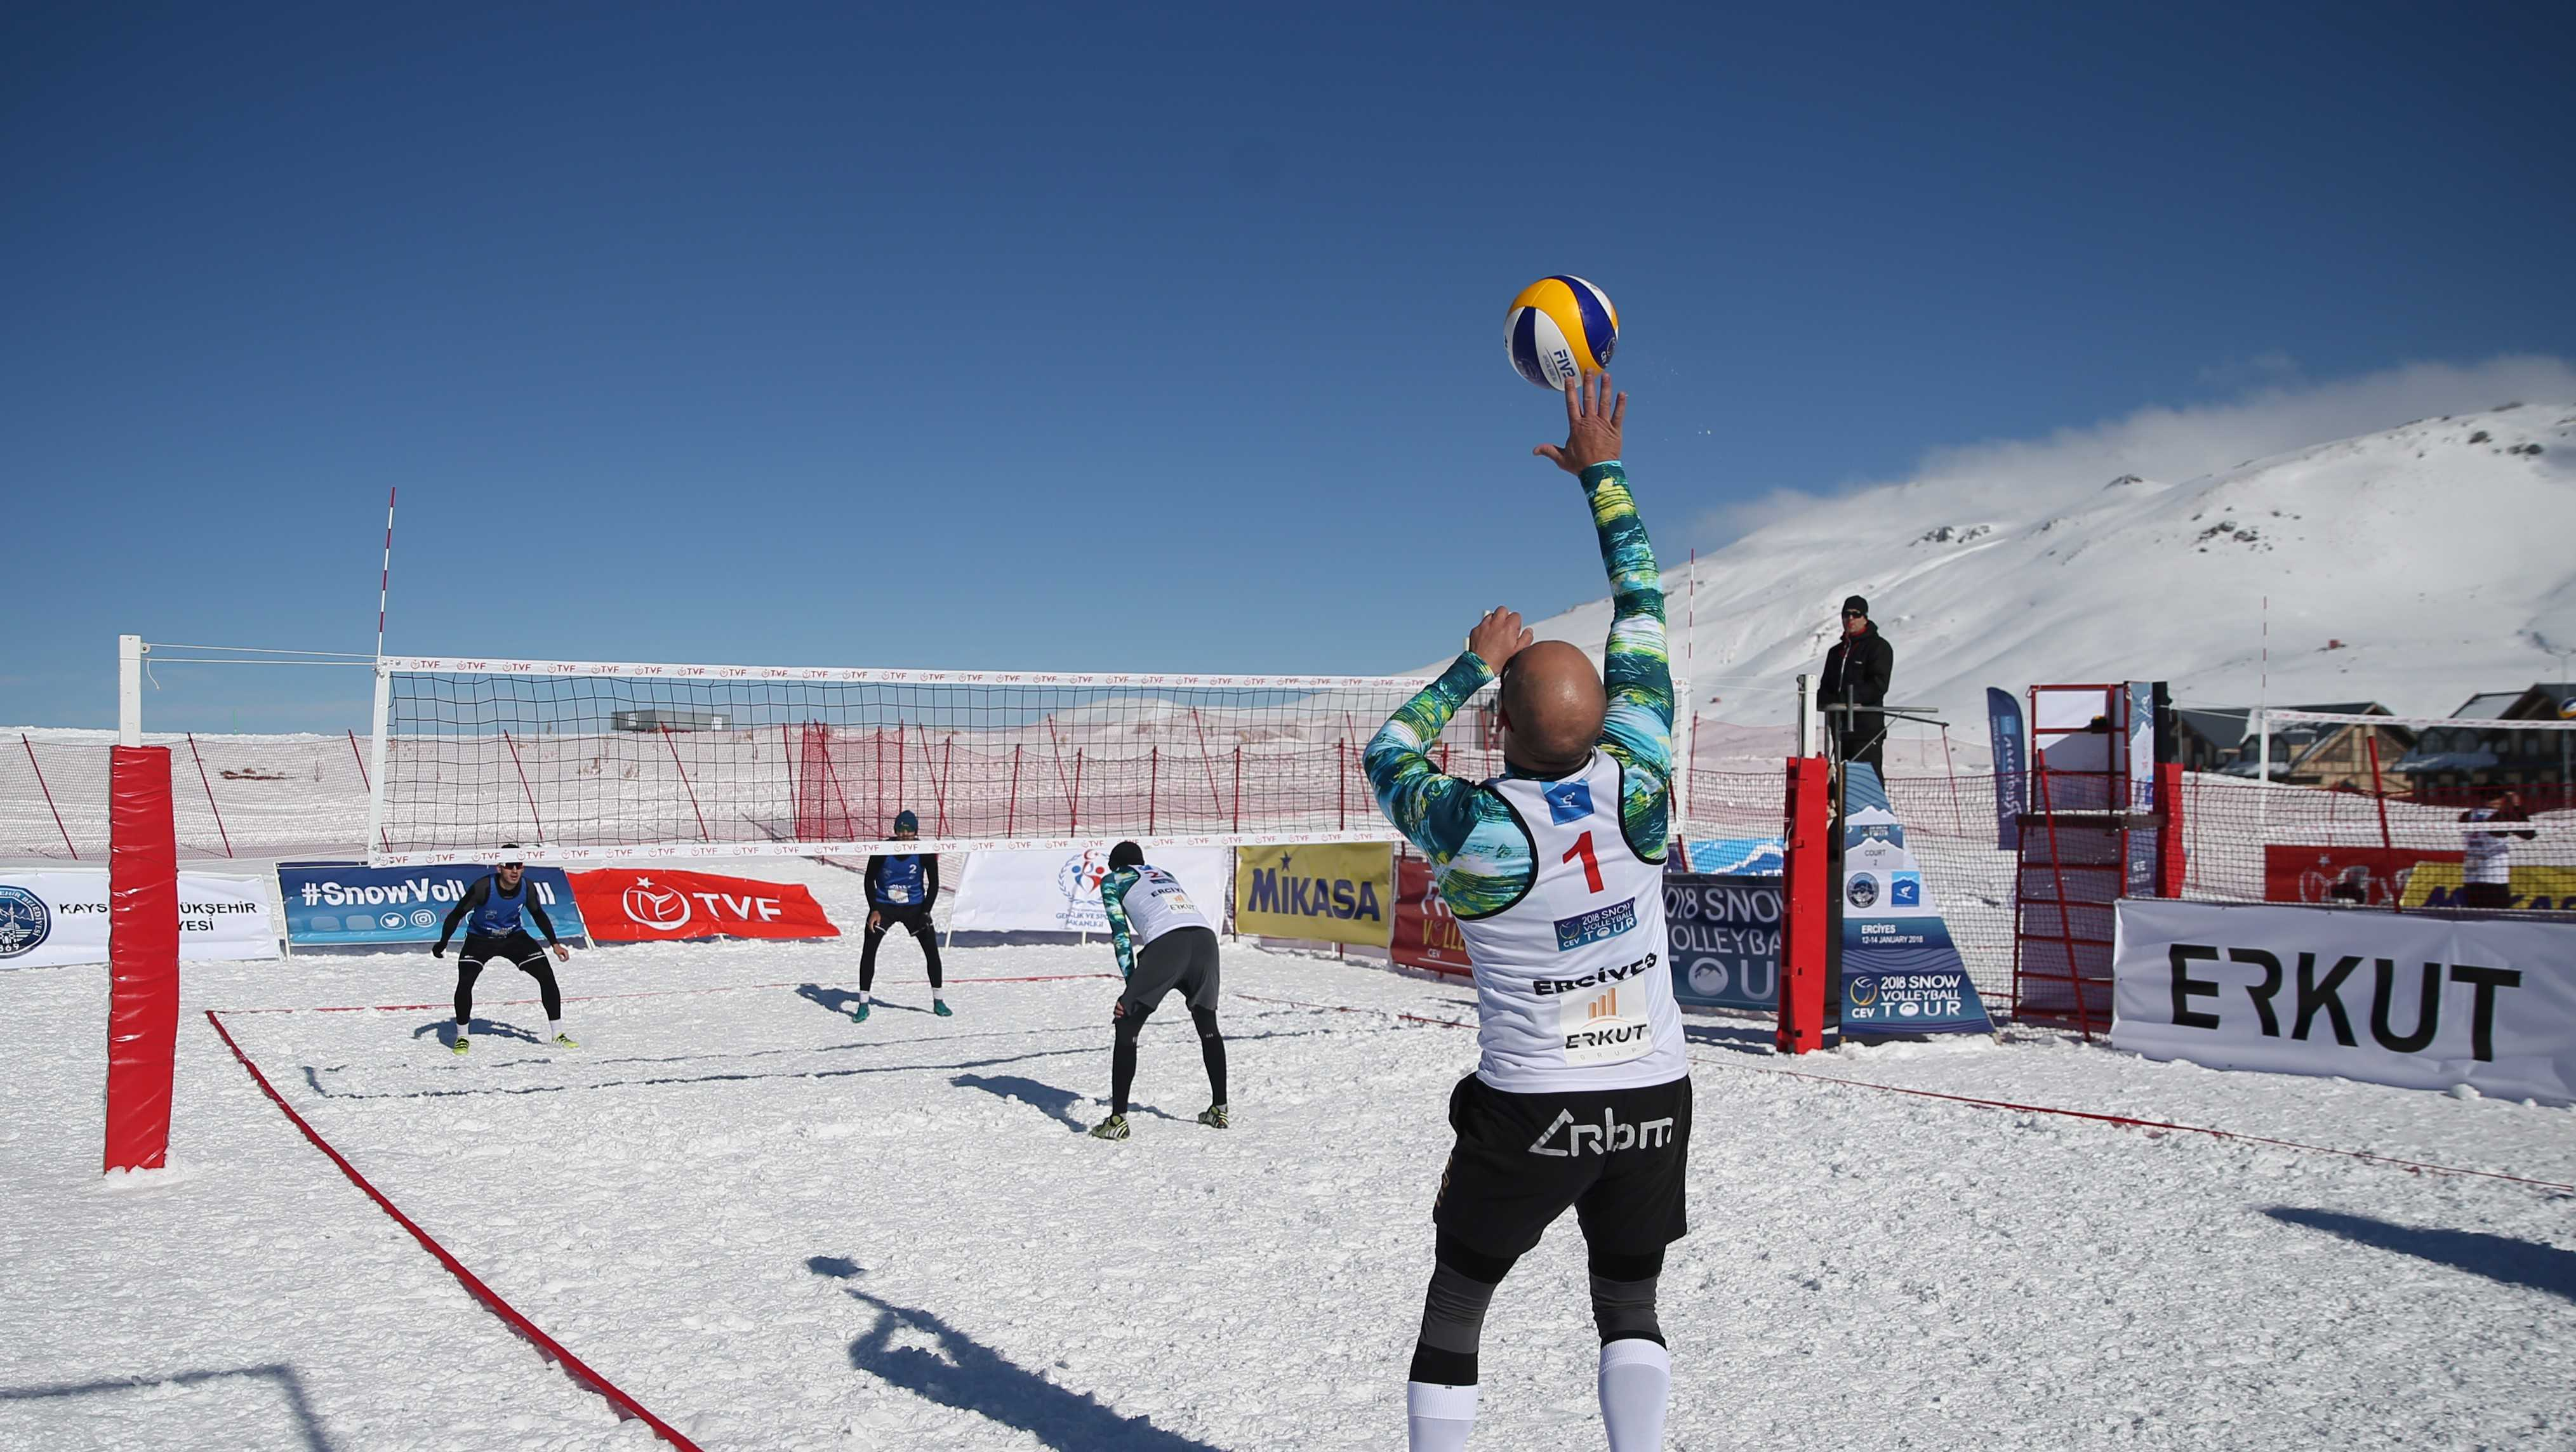 A player serves the ball in a second day match within the European Volleyball Confederation (CEV) Snow Volleyball European Tour at Erciyes Ski Resort in Kayseri, Turkey on January 13, 2018.